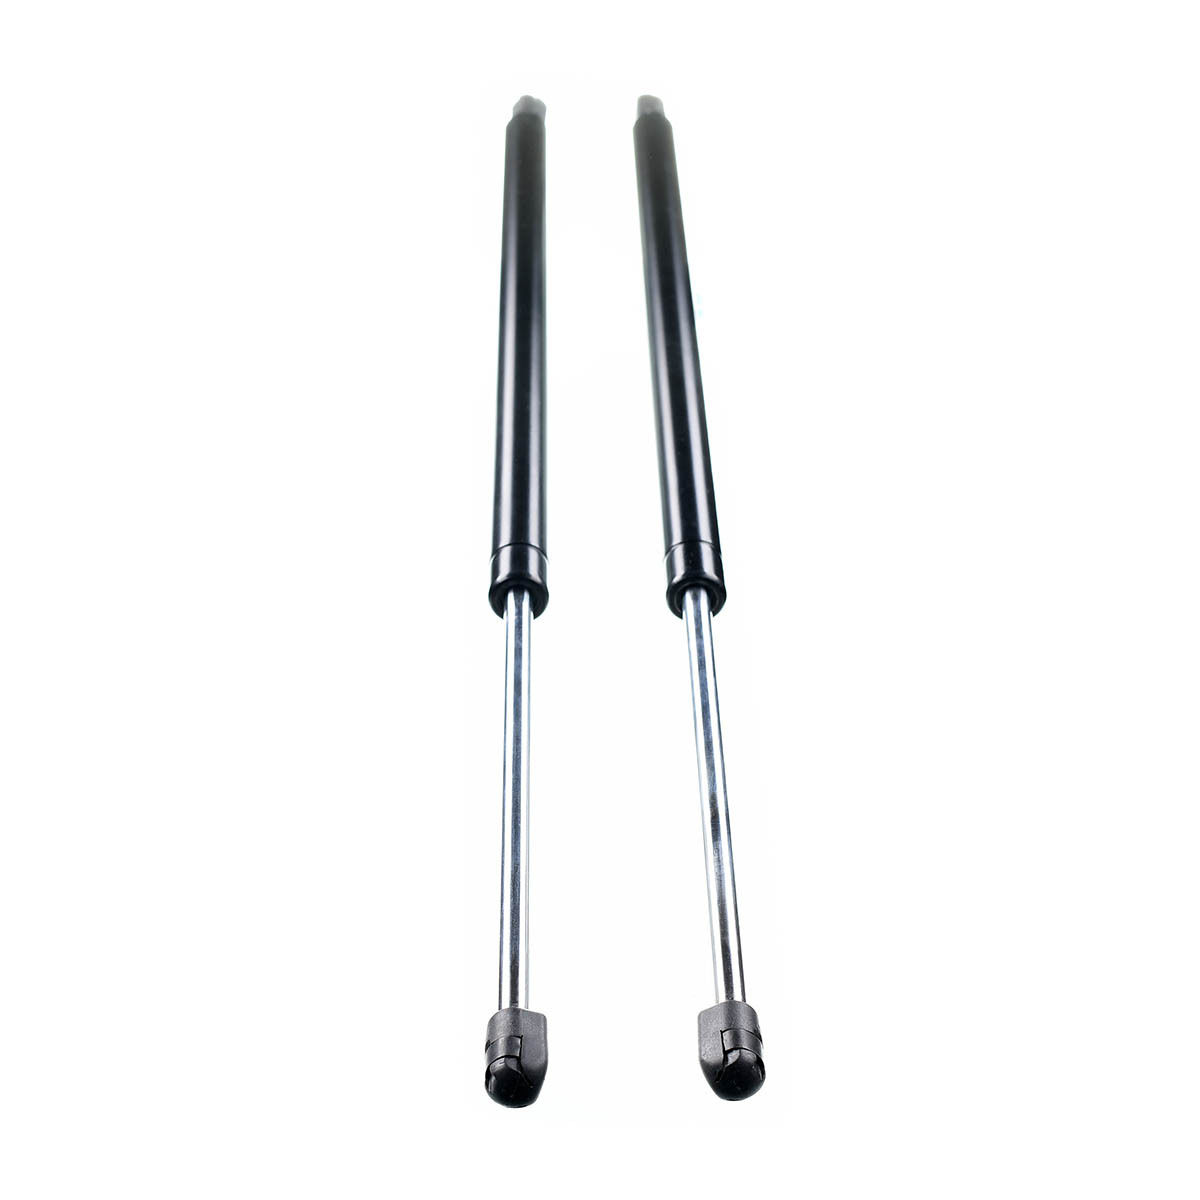 2 Pcs Rear Tailgate Lift Supports Shocks Struts For Acura